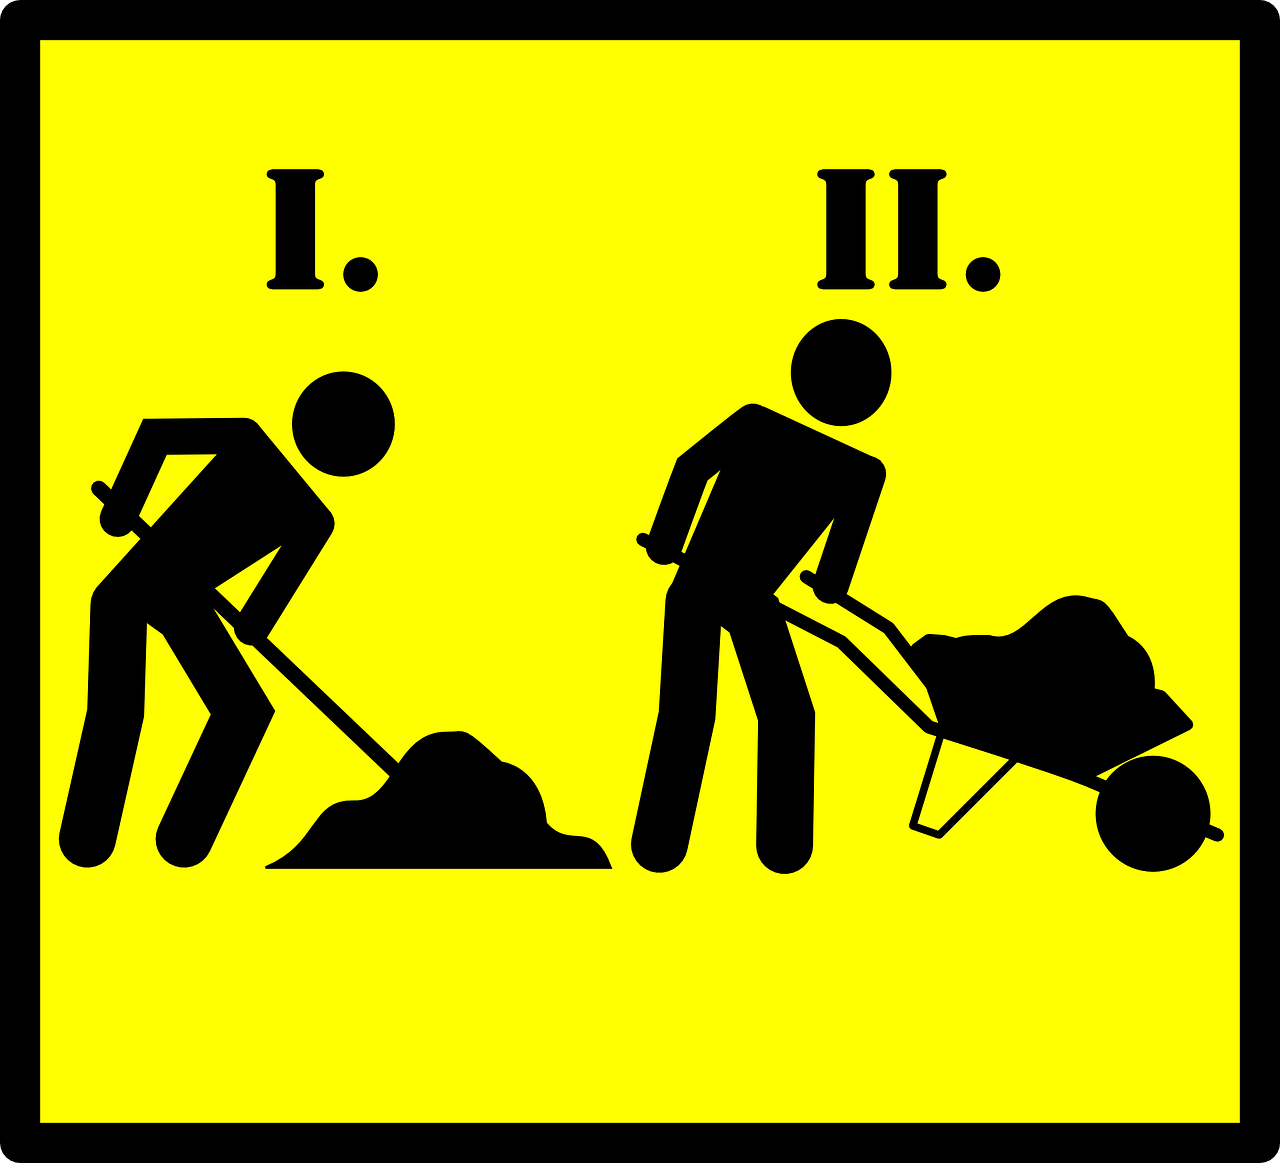 road sign,roadsign,road work,men,worker,sand,road,work,street sign,yellow,black,free vector graphics,free pictures, free photos, free images, royalty free, free illustrations, public domain